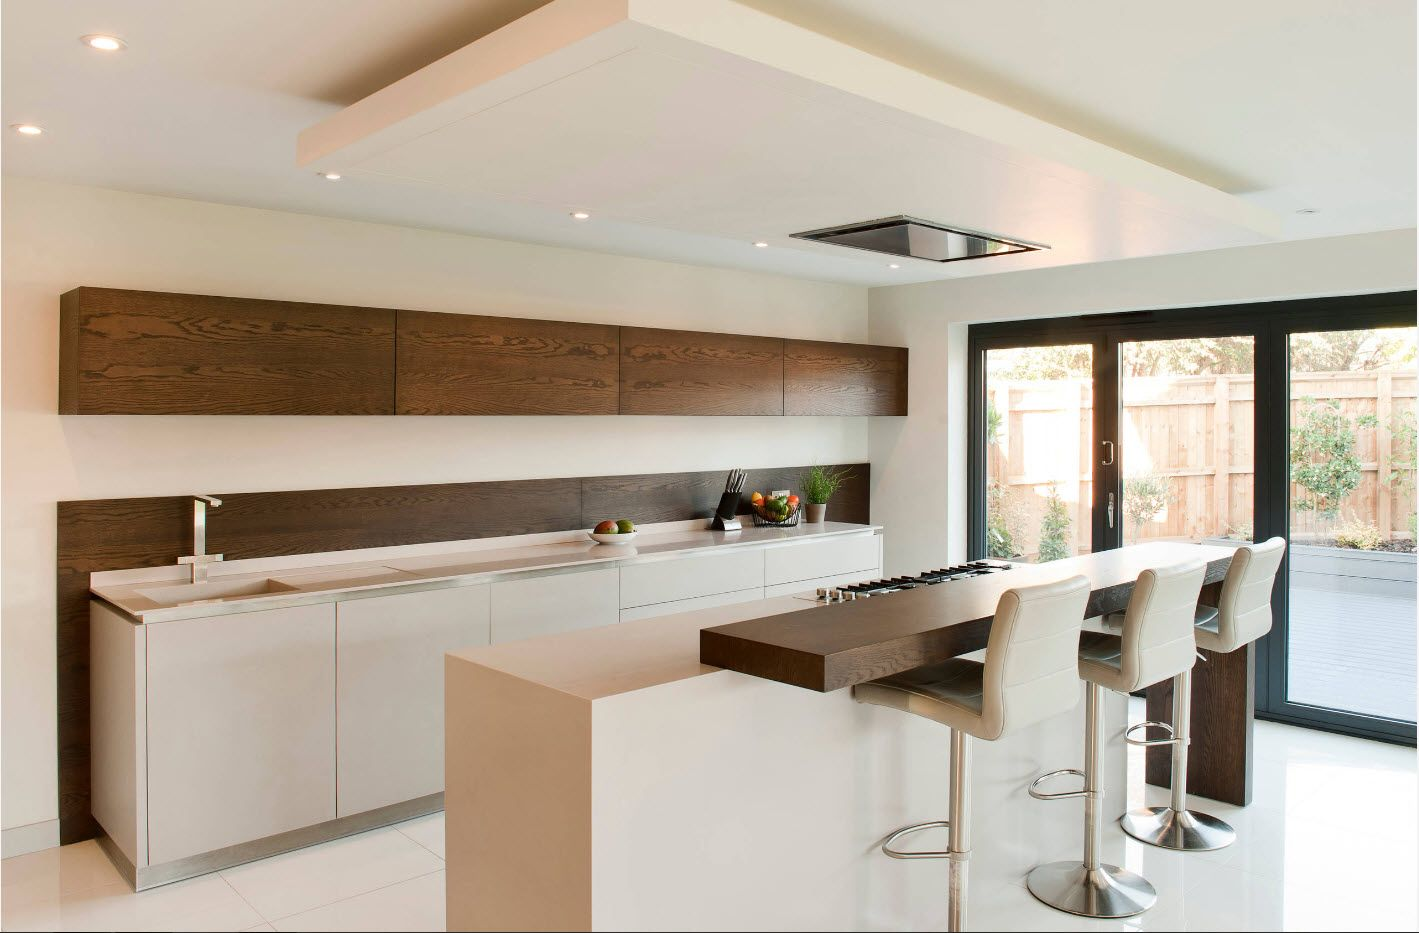 Rational design of the kitchen